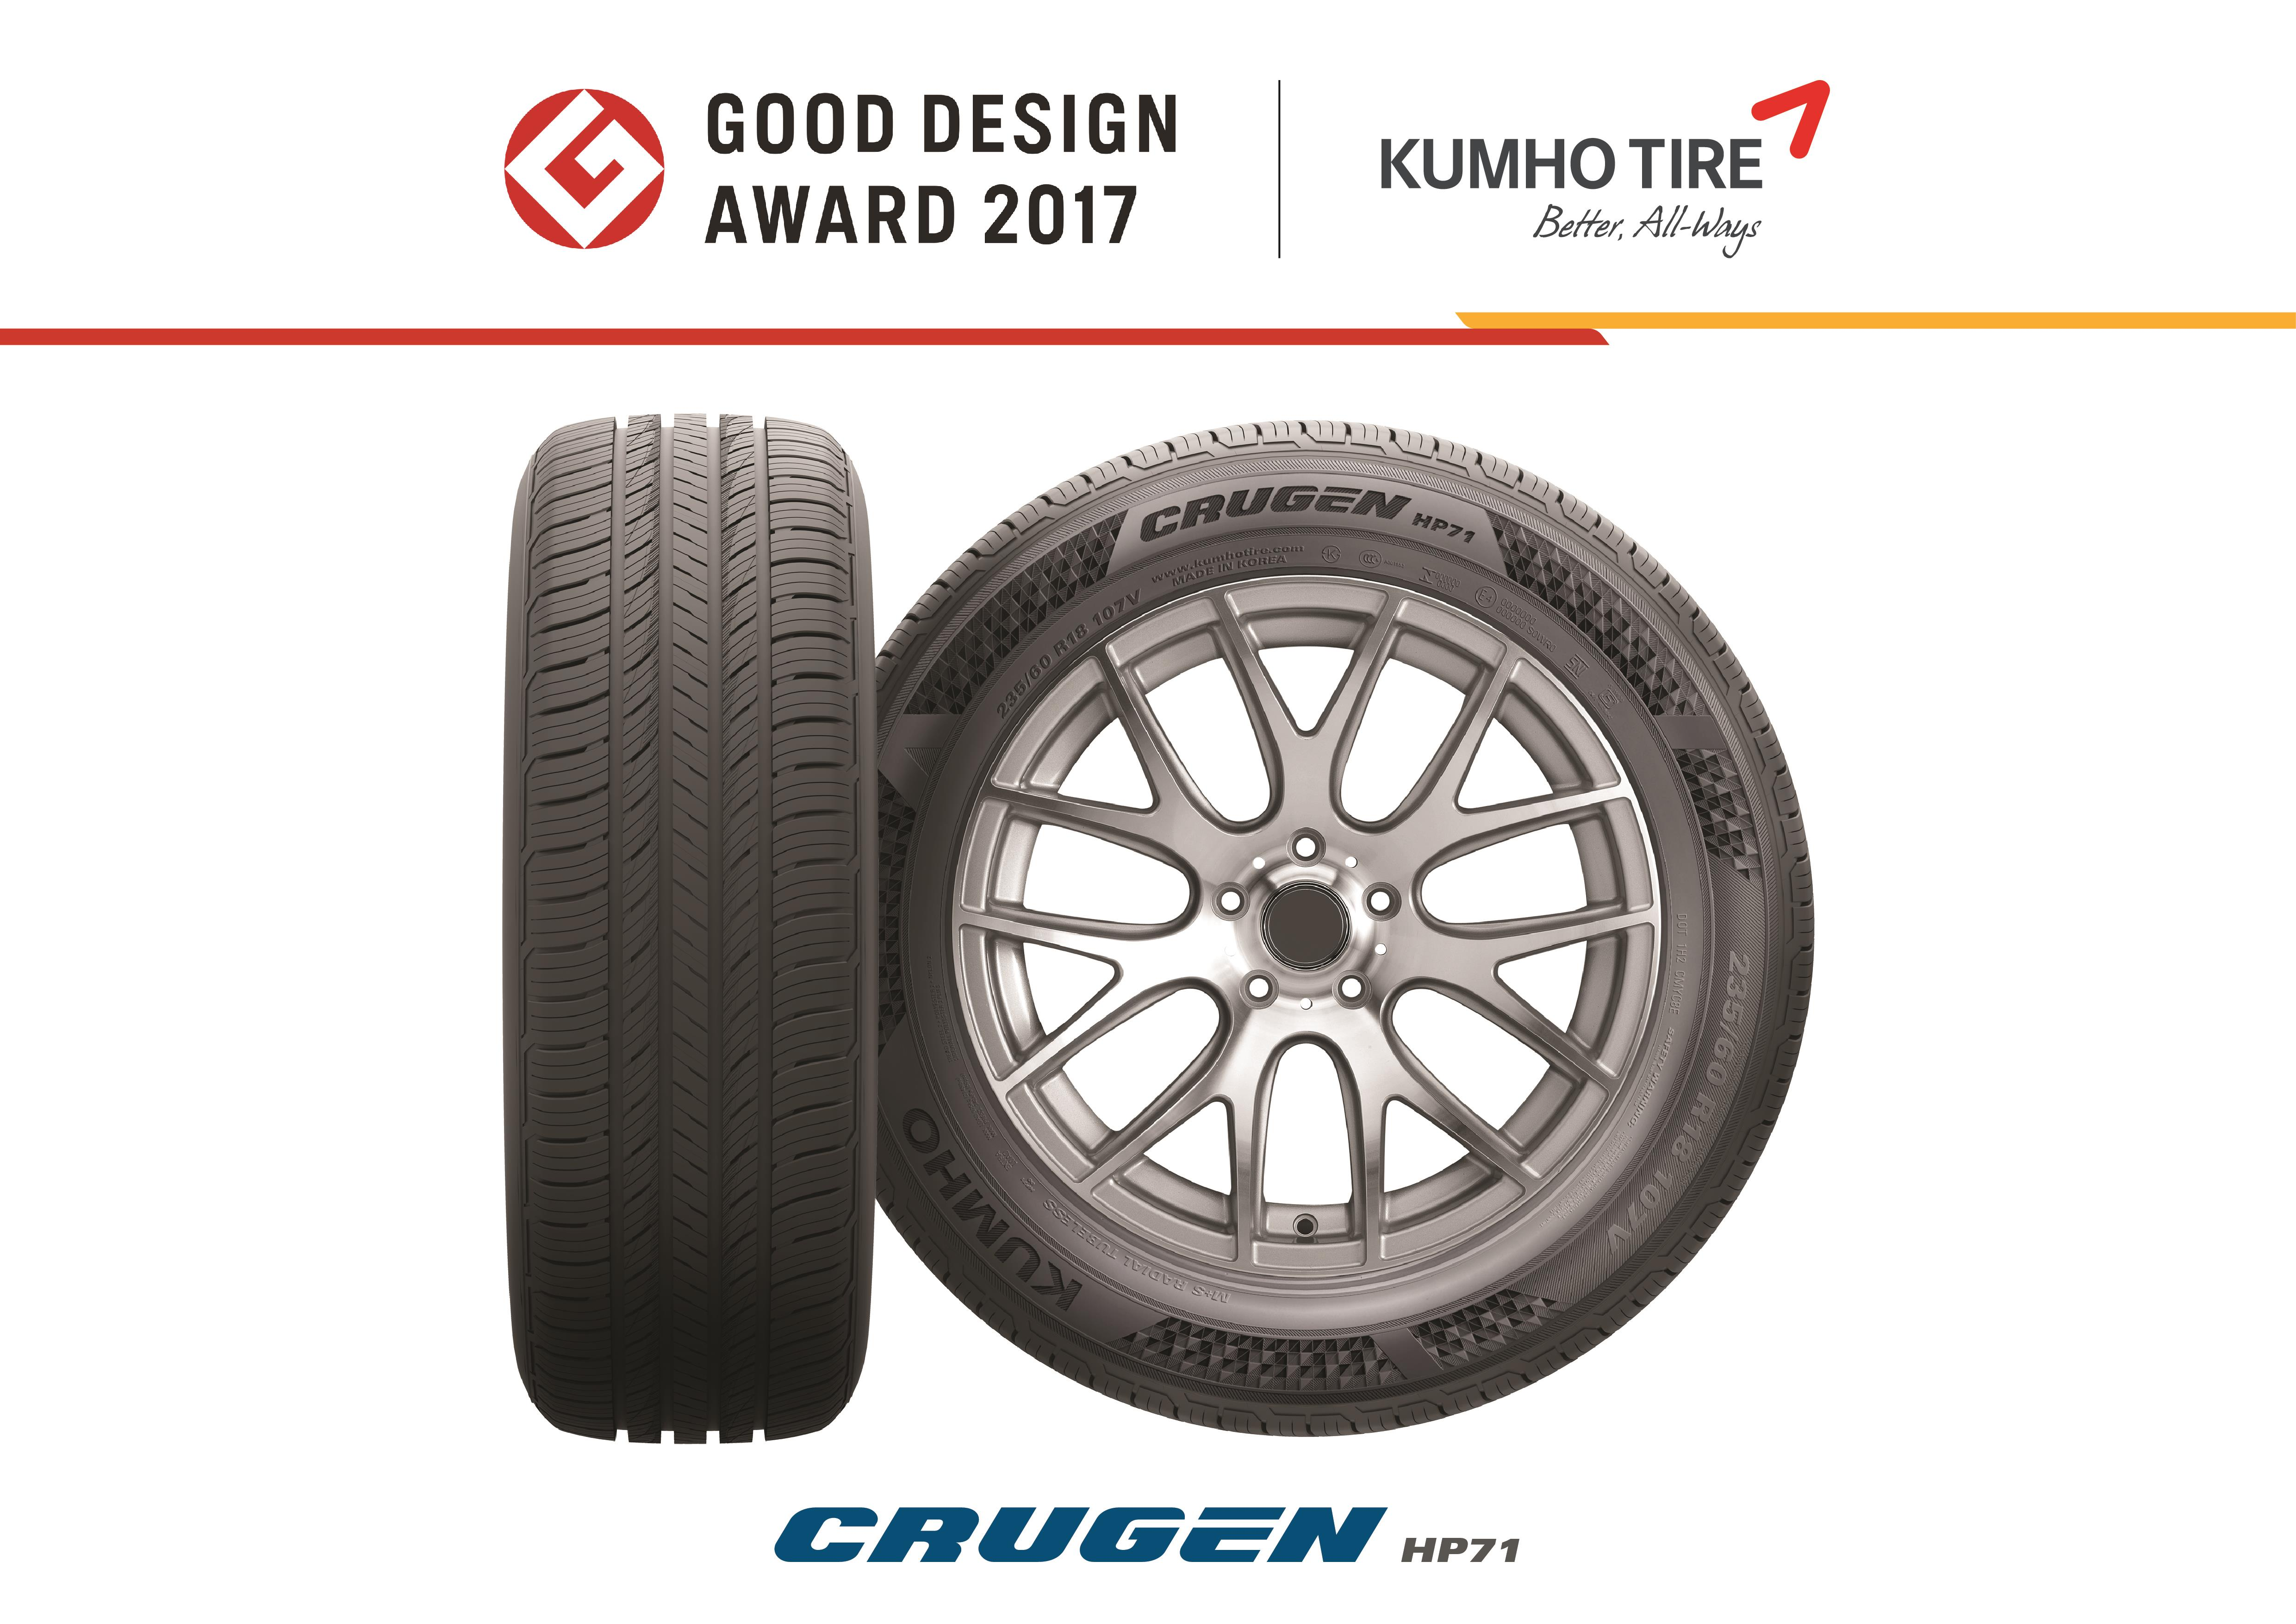 An image of Kumho Tire's Crugen HP71 tire.